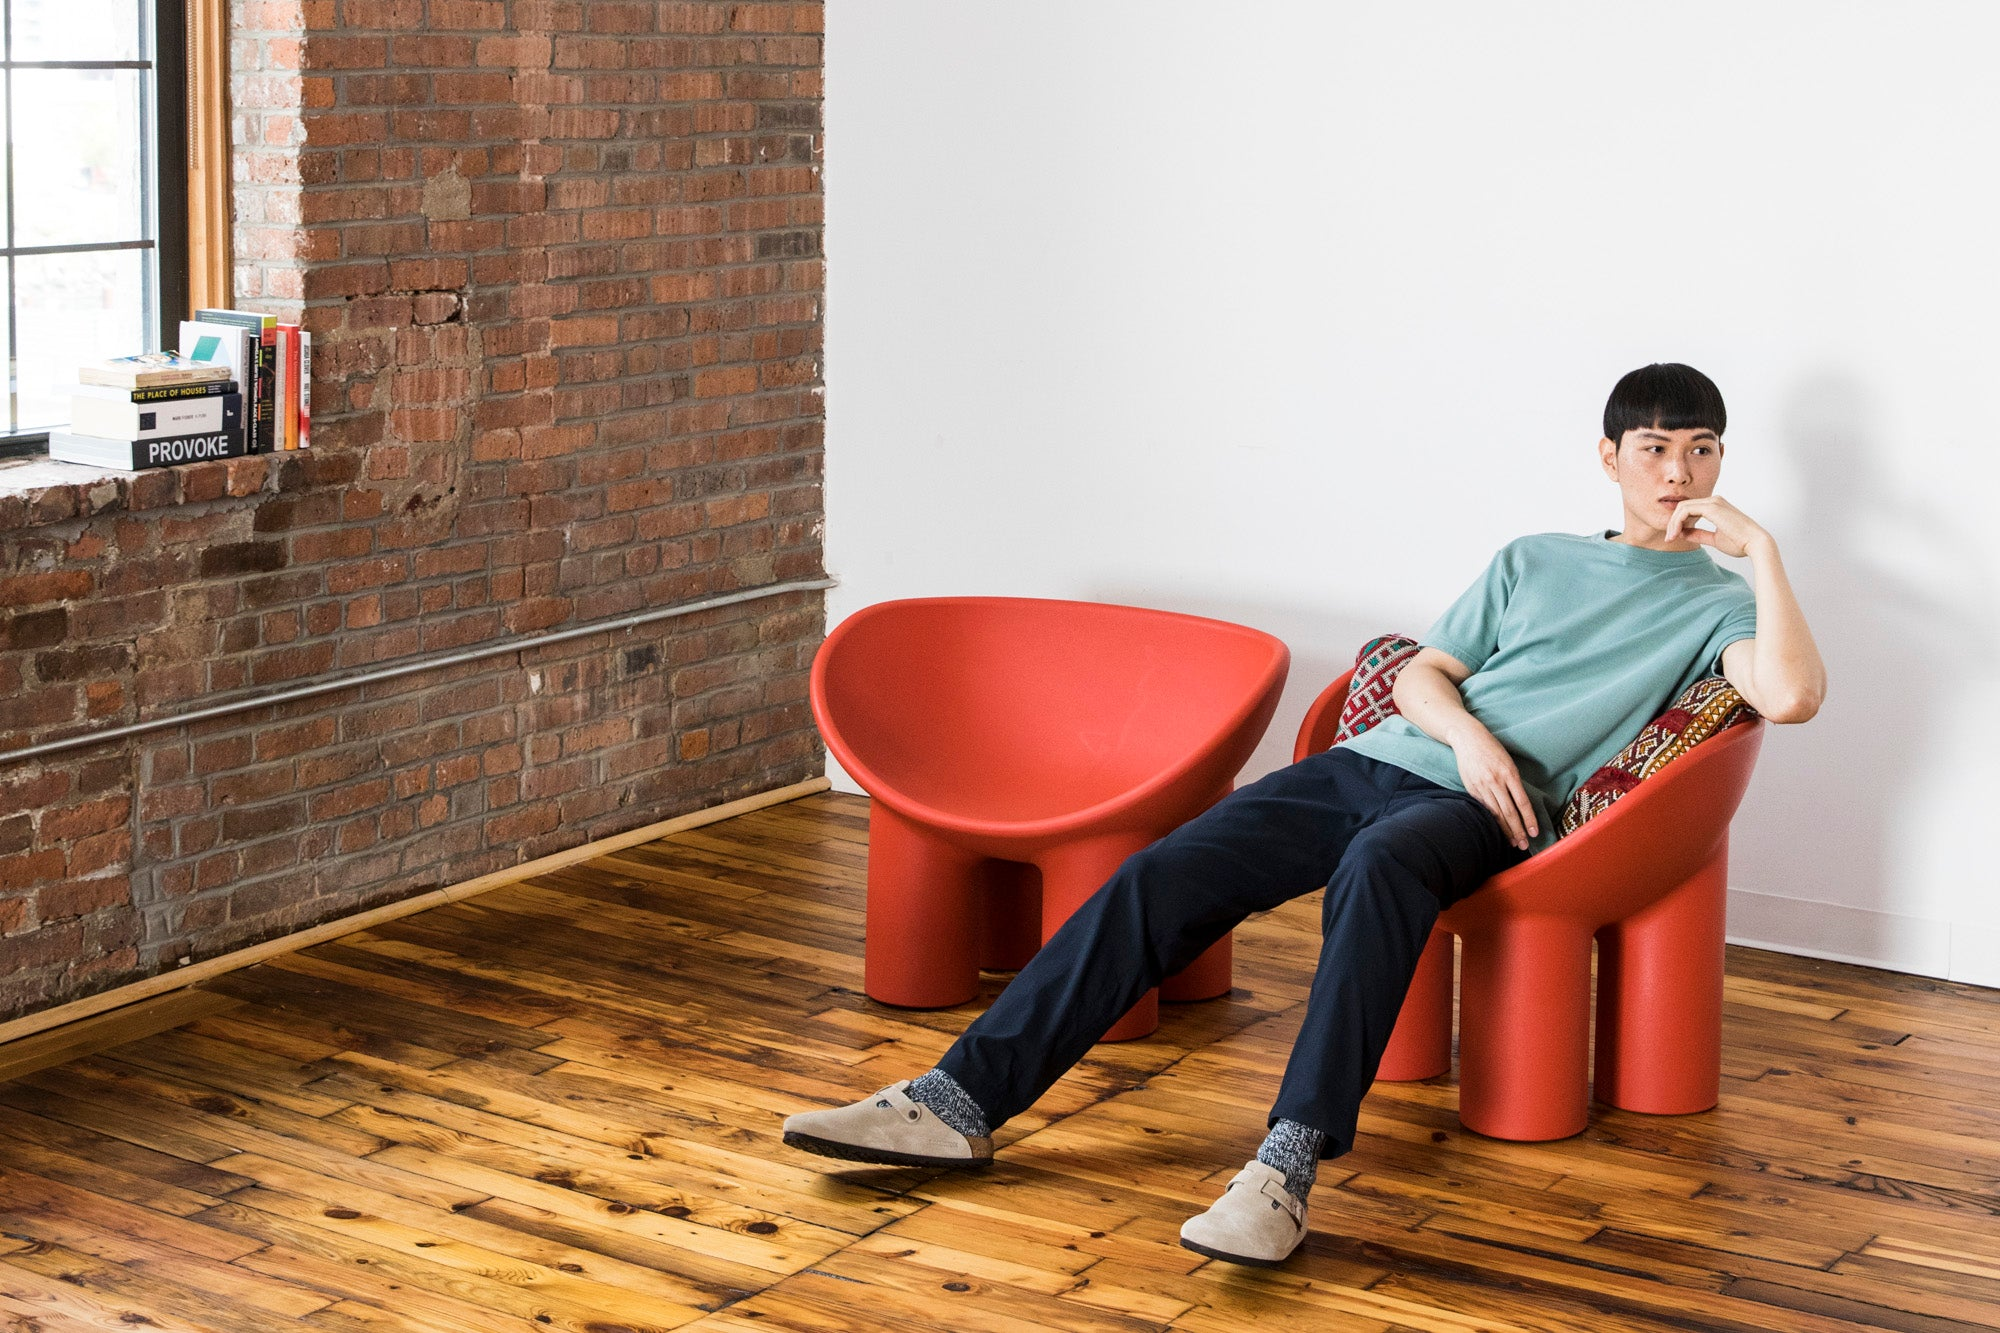 Pace in the F.Cloth Yes Pants in Dark Navy and Cottonweight Cut Two T-Shirt in Sage, sitting on a red chair